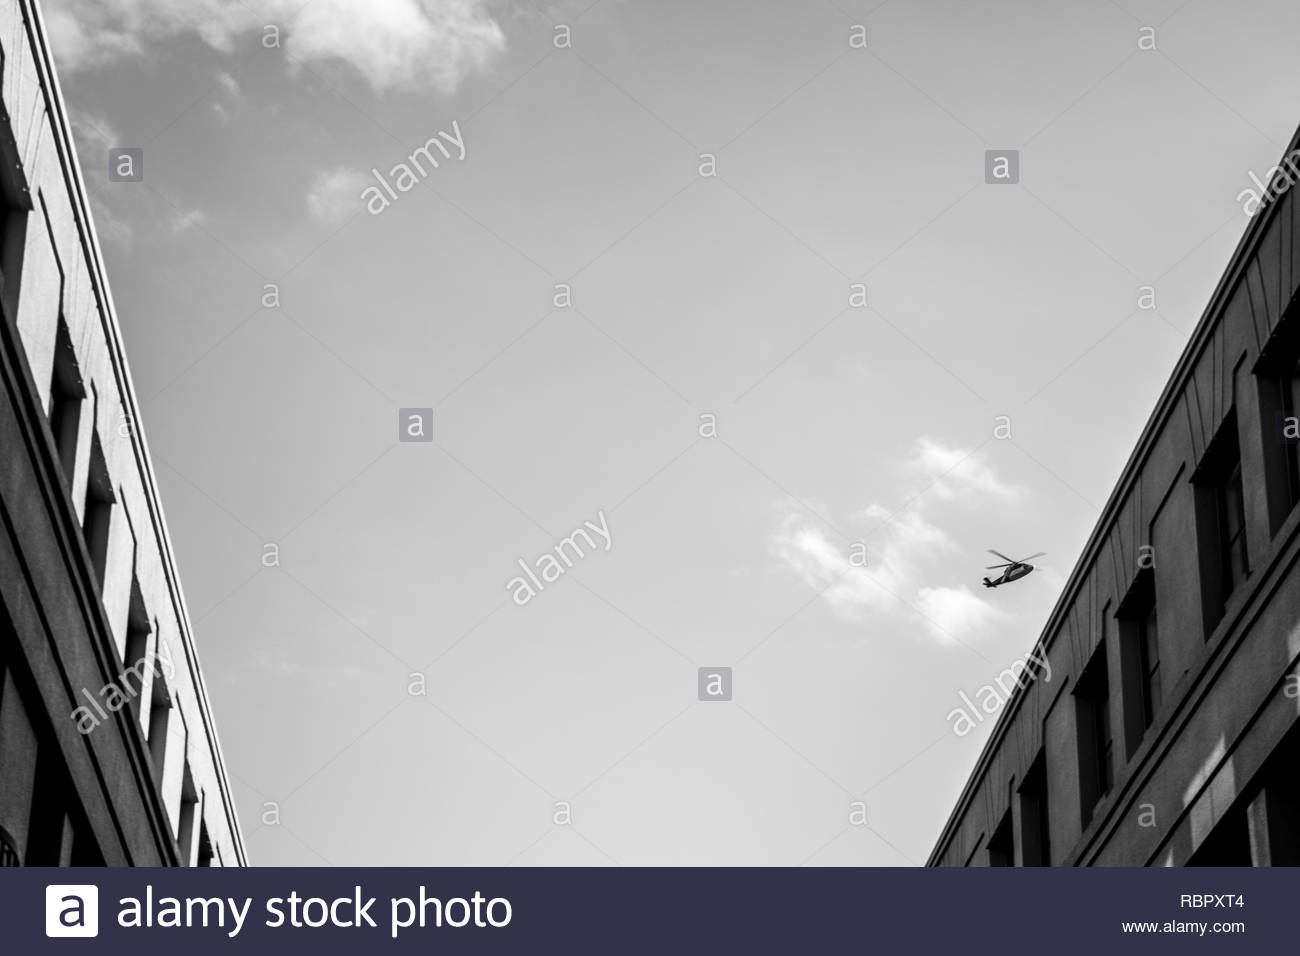 Helicopter near clouds - Stock Image